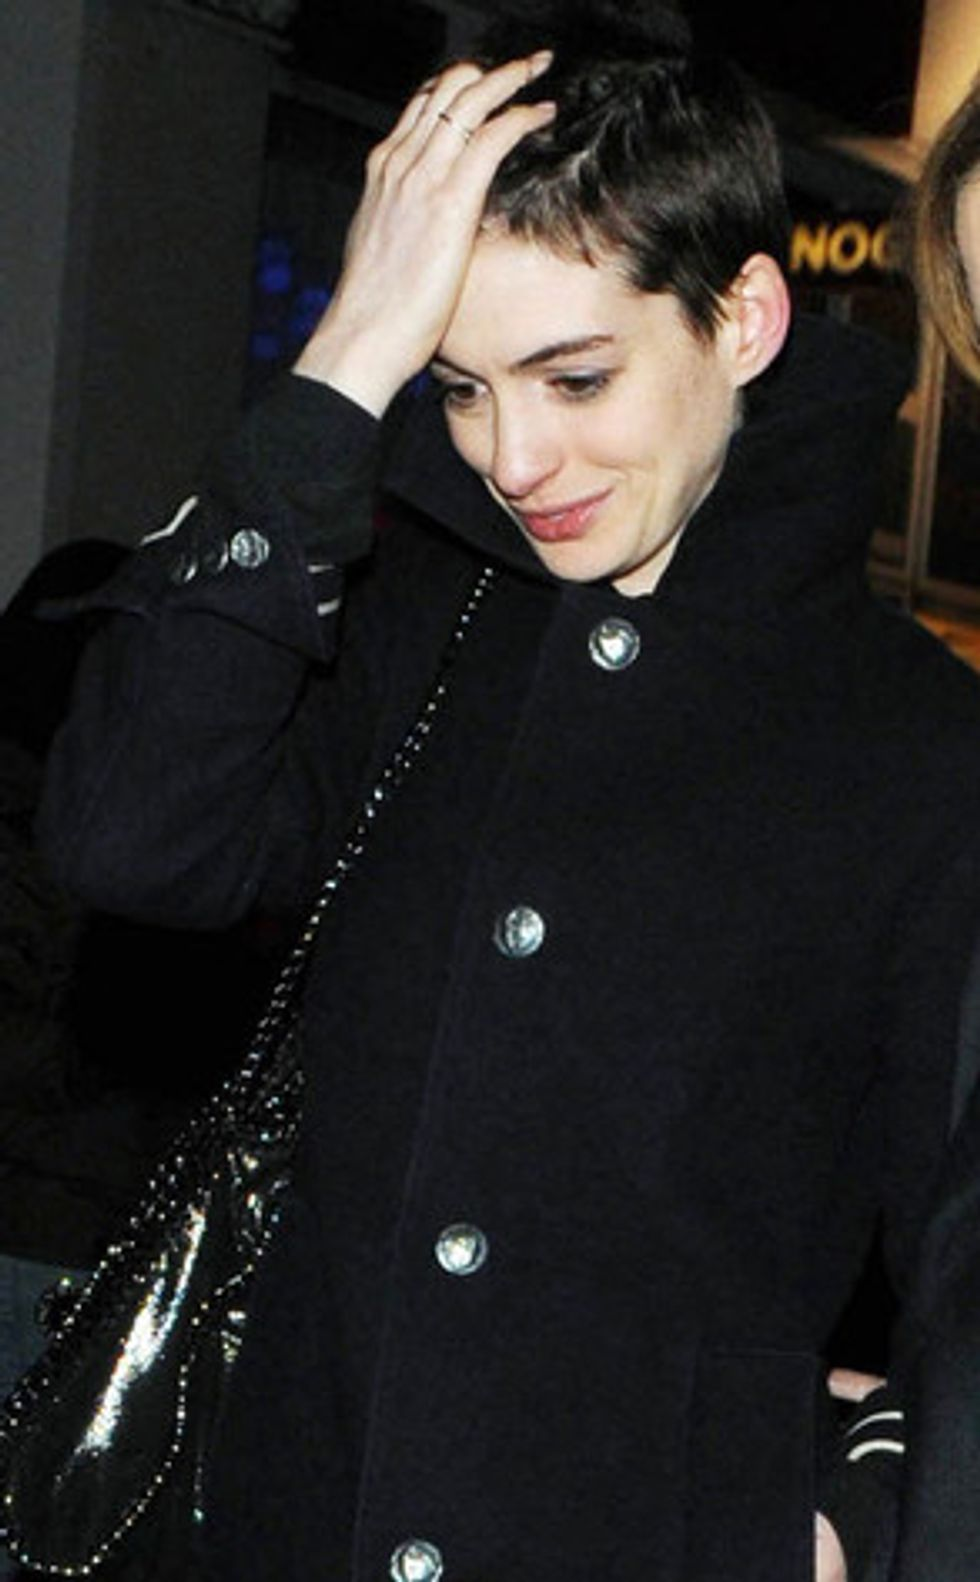 The Morning Funnies: Anne Hathaway's Haircut + Selleck Waterfall Sandwich